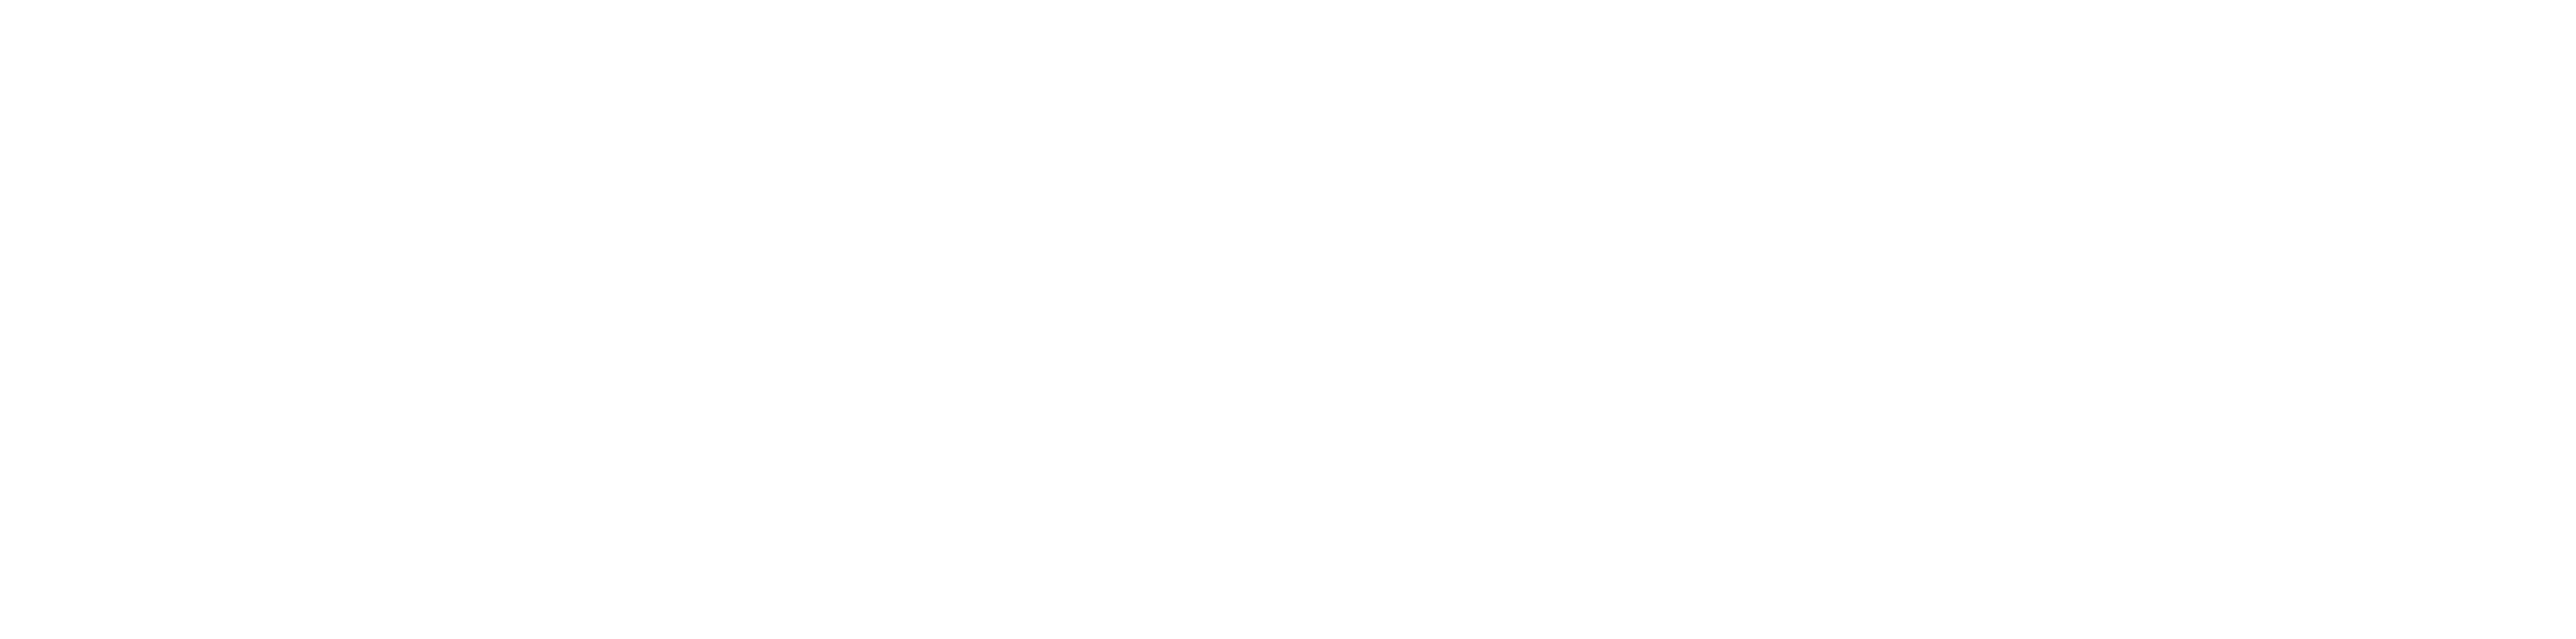 Blue Anchor Wealth Advisors, LLC